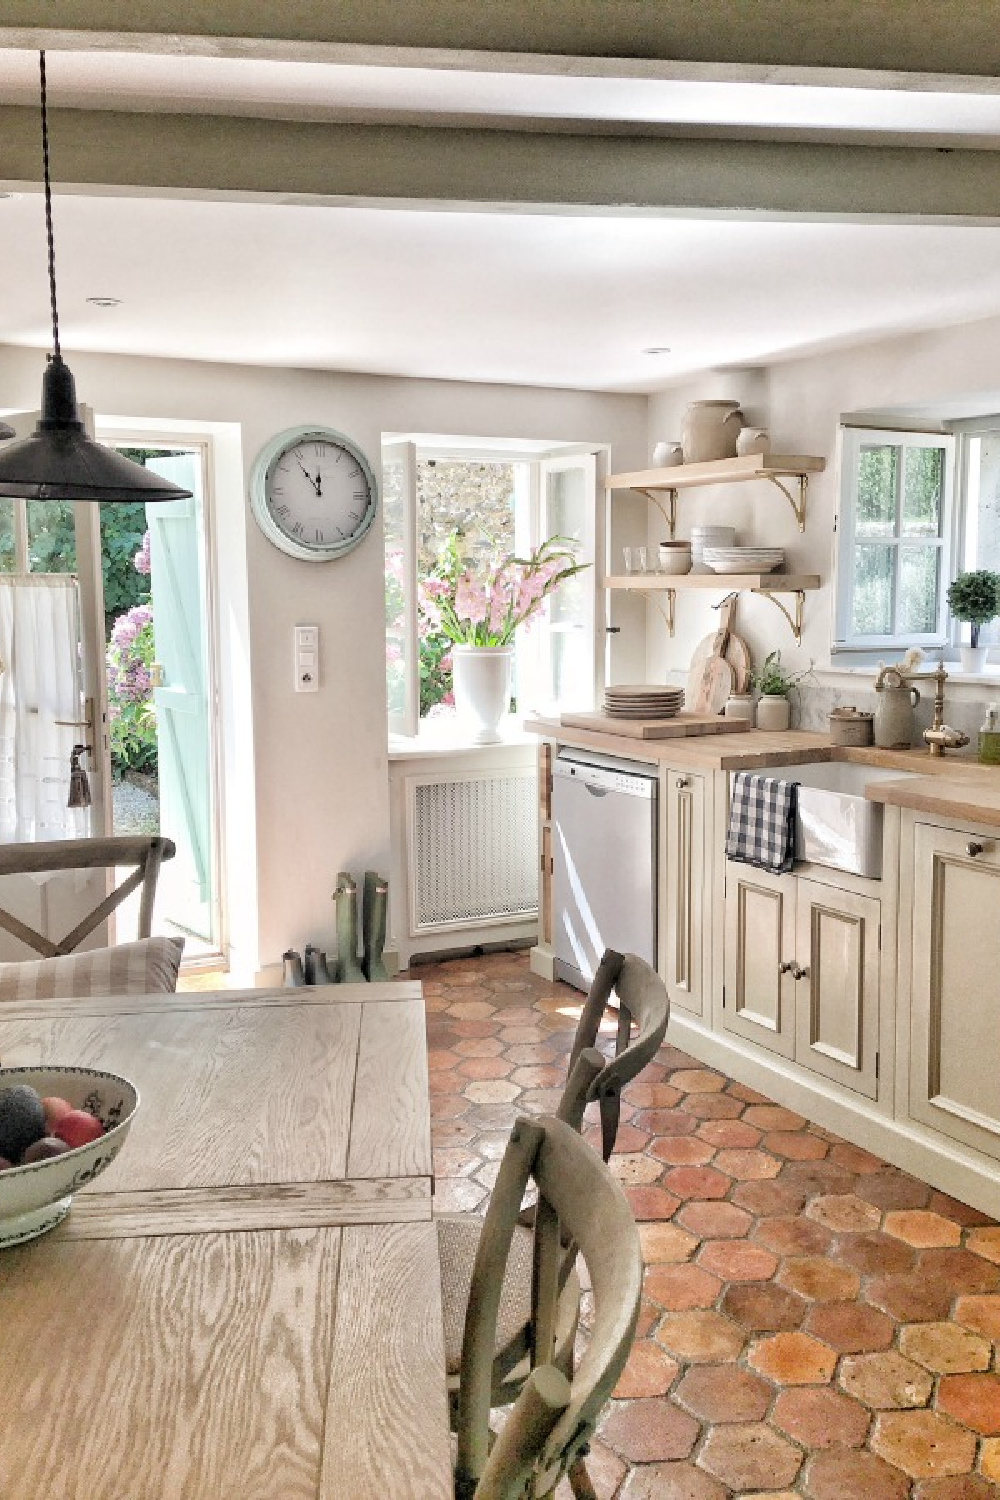 Charming French kitchen with reclaimed terracotta tile floor. French farmhouse design inspiration with an interview with Vivi et Margot. Come be inspired on Hello Lovely and learn the paint colors used in these beautiful authentic French country interiors. #frenchkitchen #frenchfarmhouse #hellolovelystudio #frenchcountry #designinspiration #interiordesign #vivietmargot #rusticdecor #frenchhome #summerliving #bordeaux #europeanfarmhouse